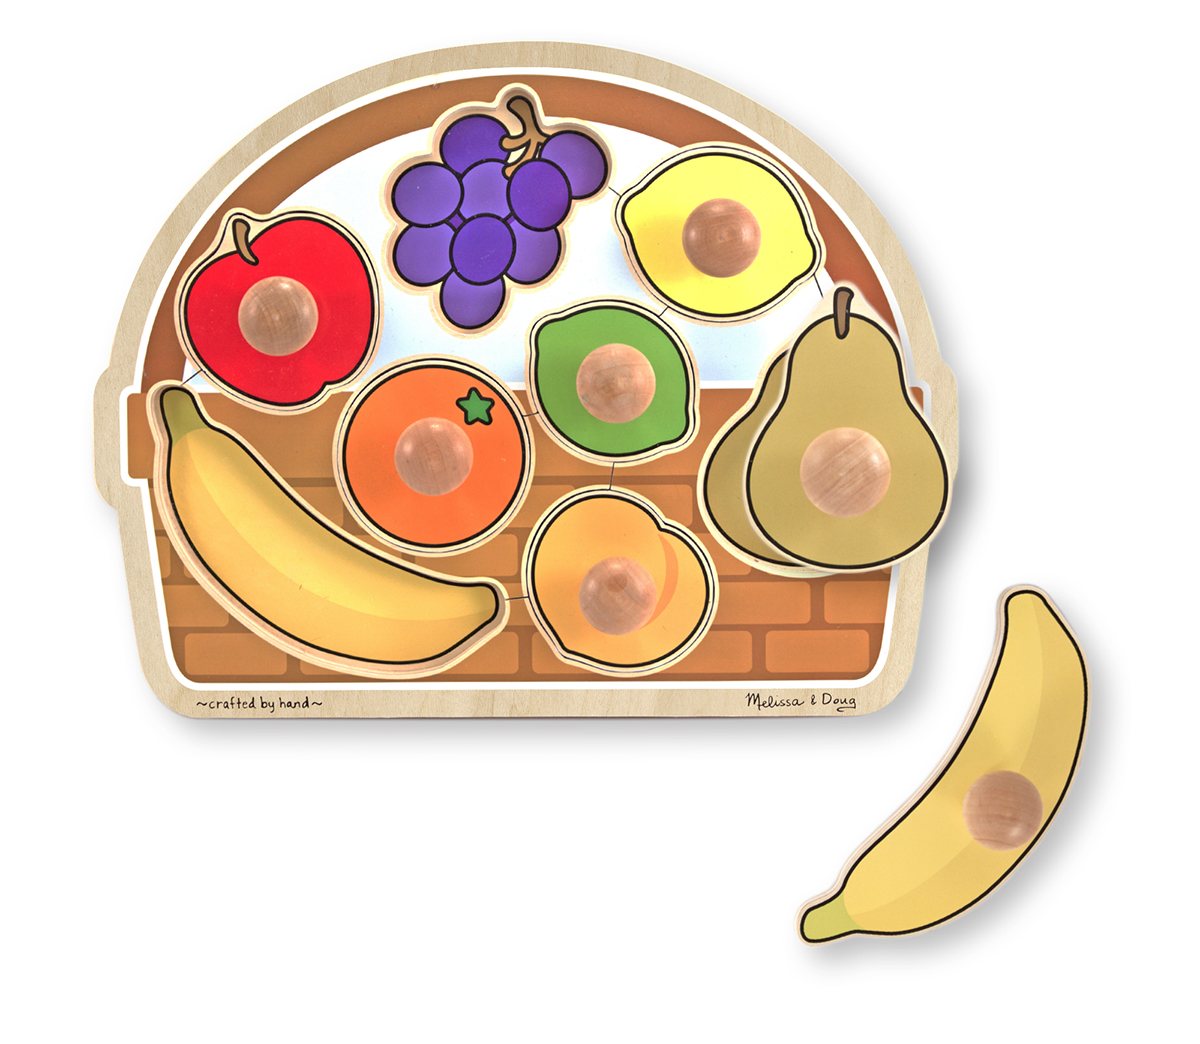 Melissa and Doug Large Fruit Basket Jumbo Knob Puzzle - 8 pieces